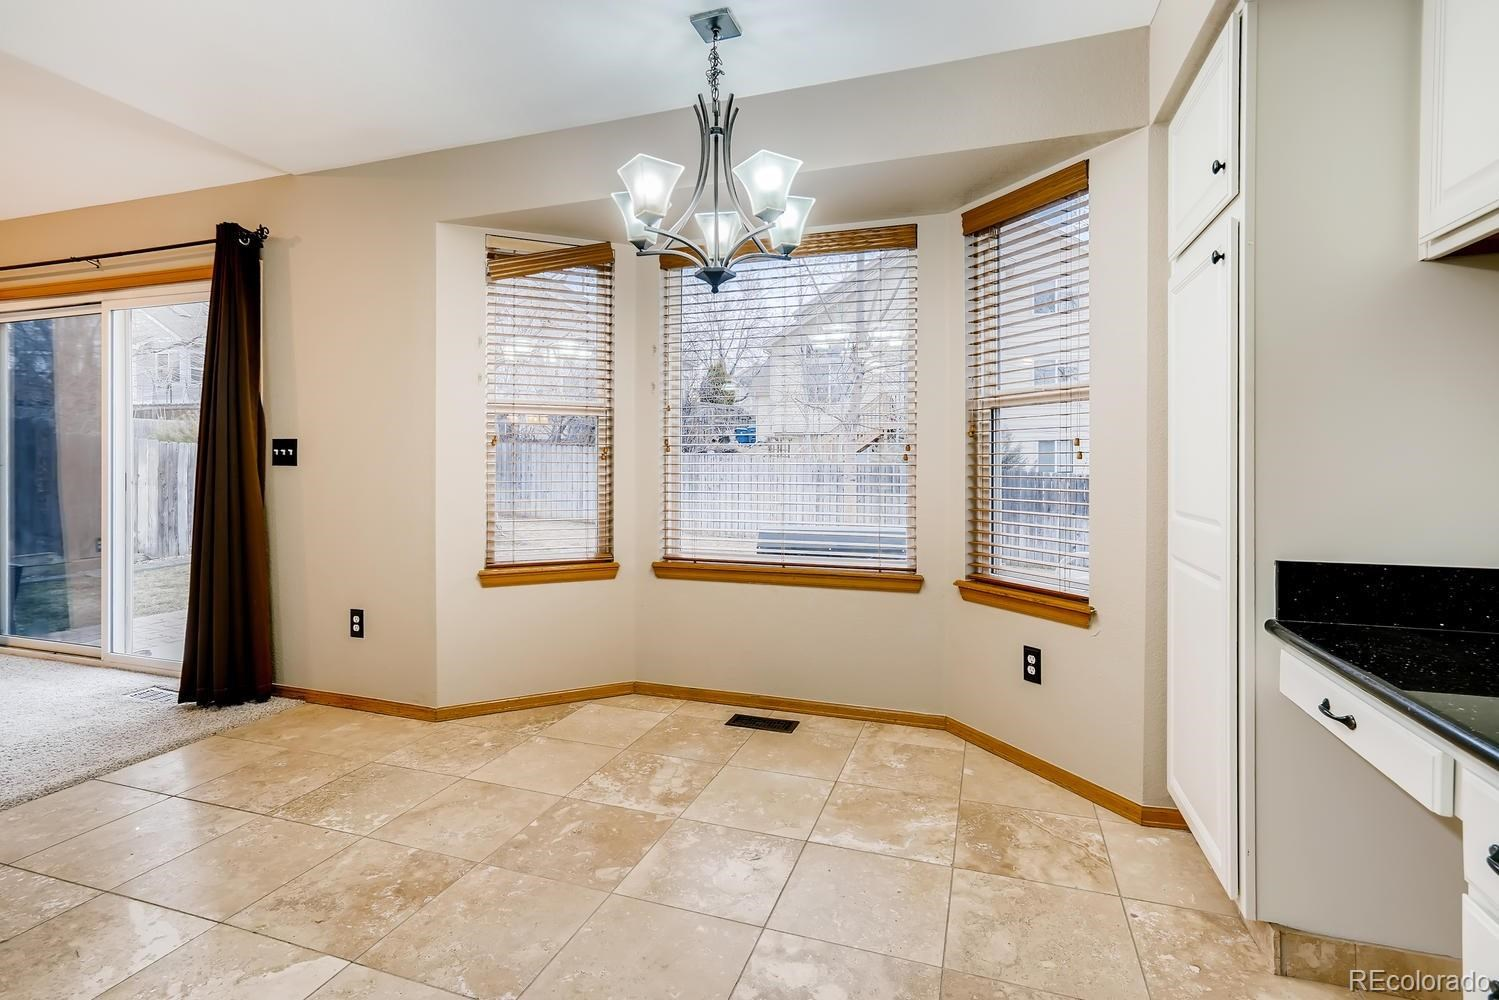 MLS# 6431155 - 12 - 6773 W 98th Circle, Westminster, CO 80021